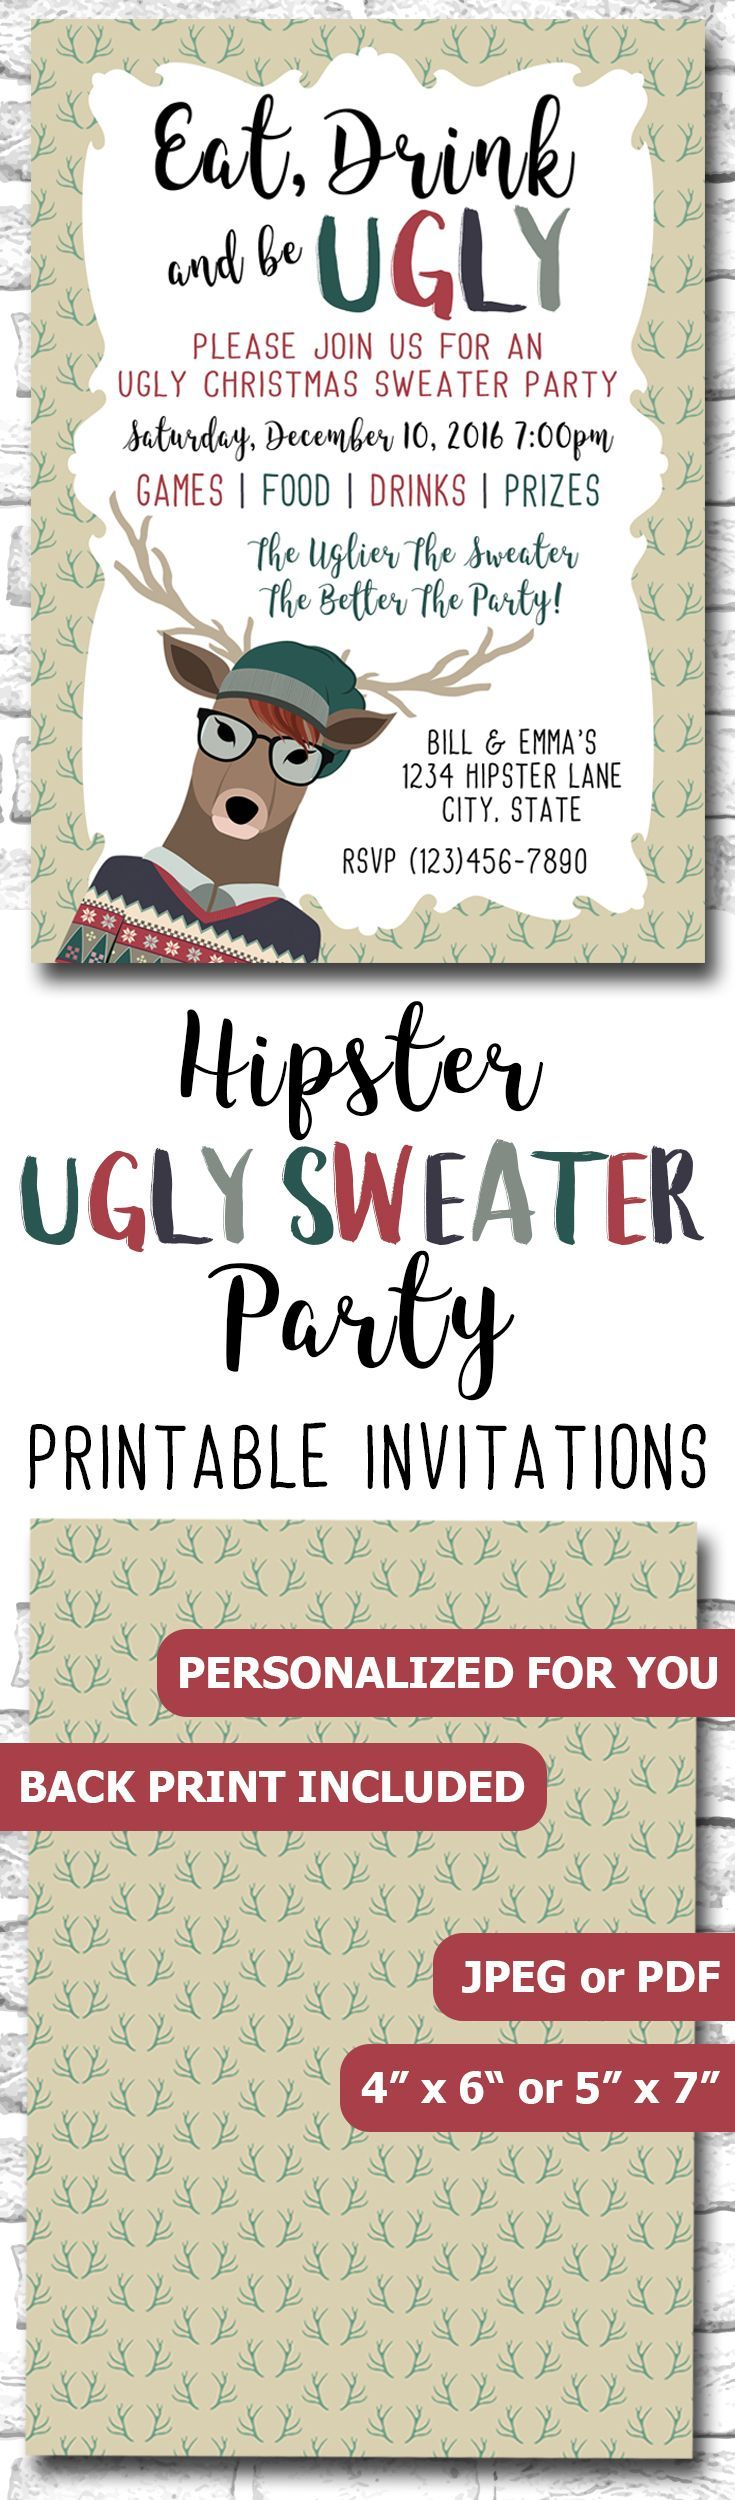 Hipster Ugly Christmas Sweater Party Invitation For Geeks, Nerds And ...